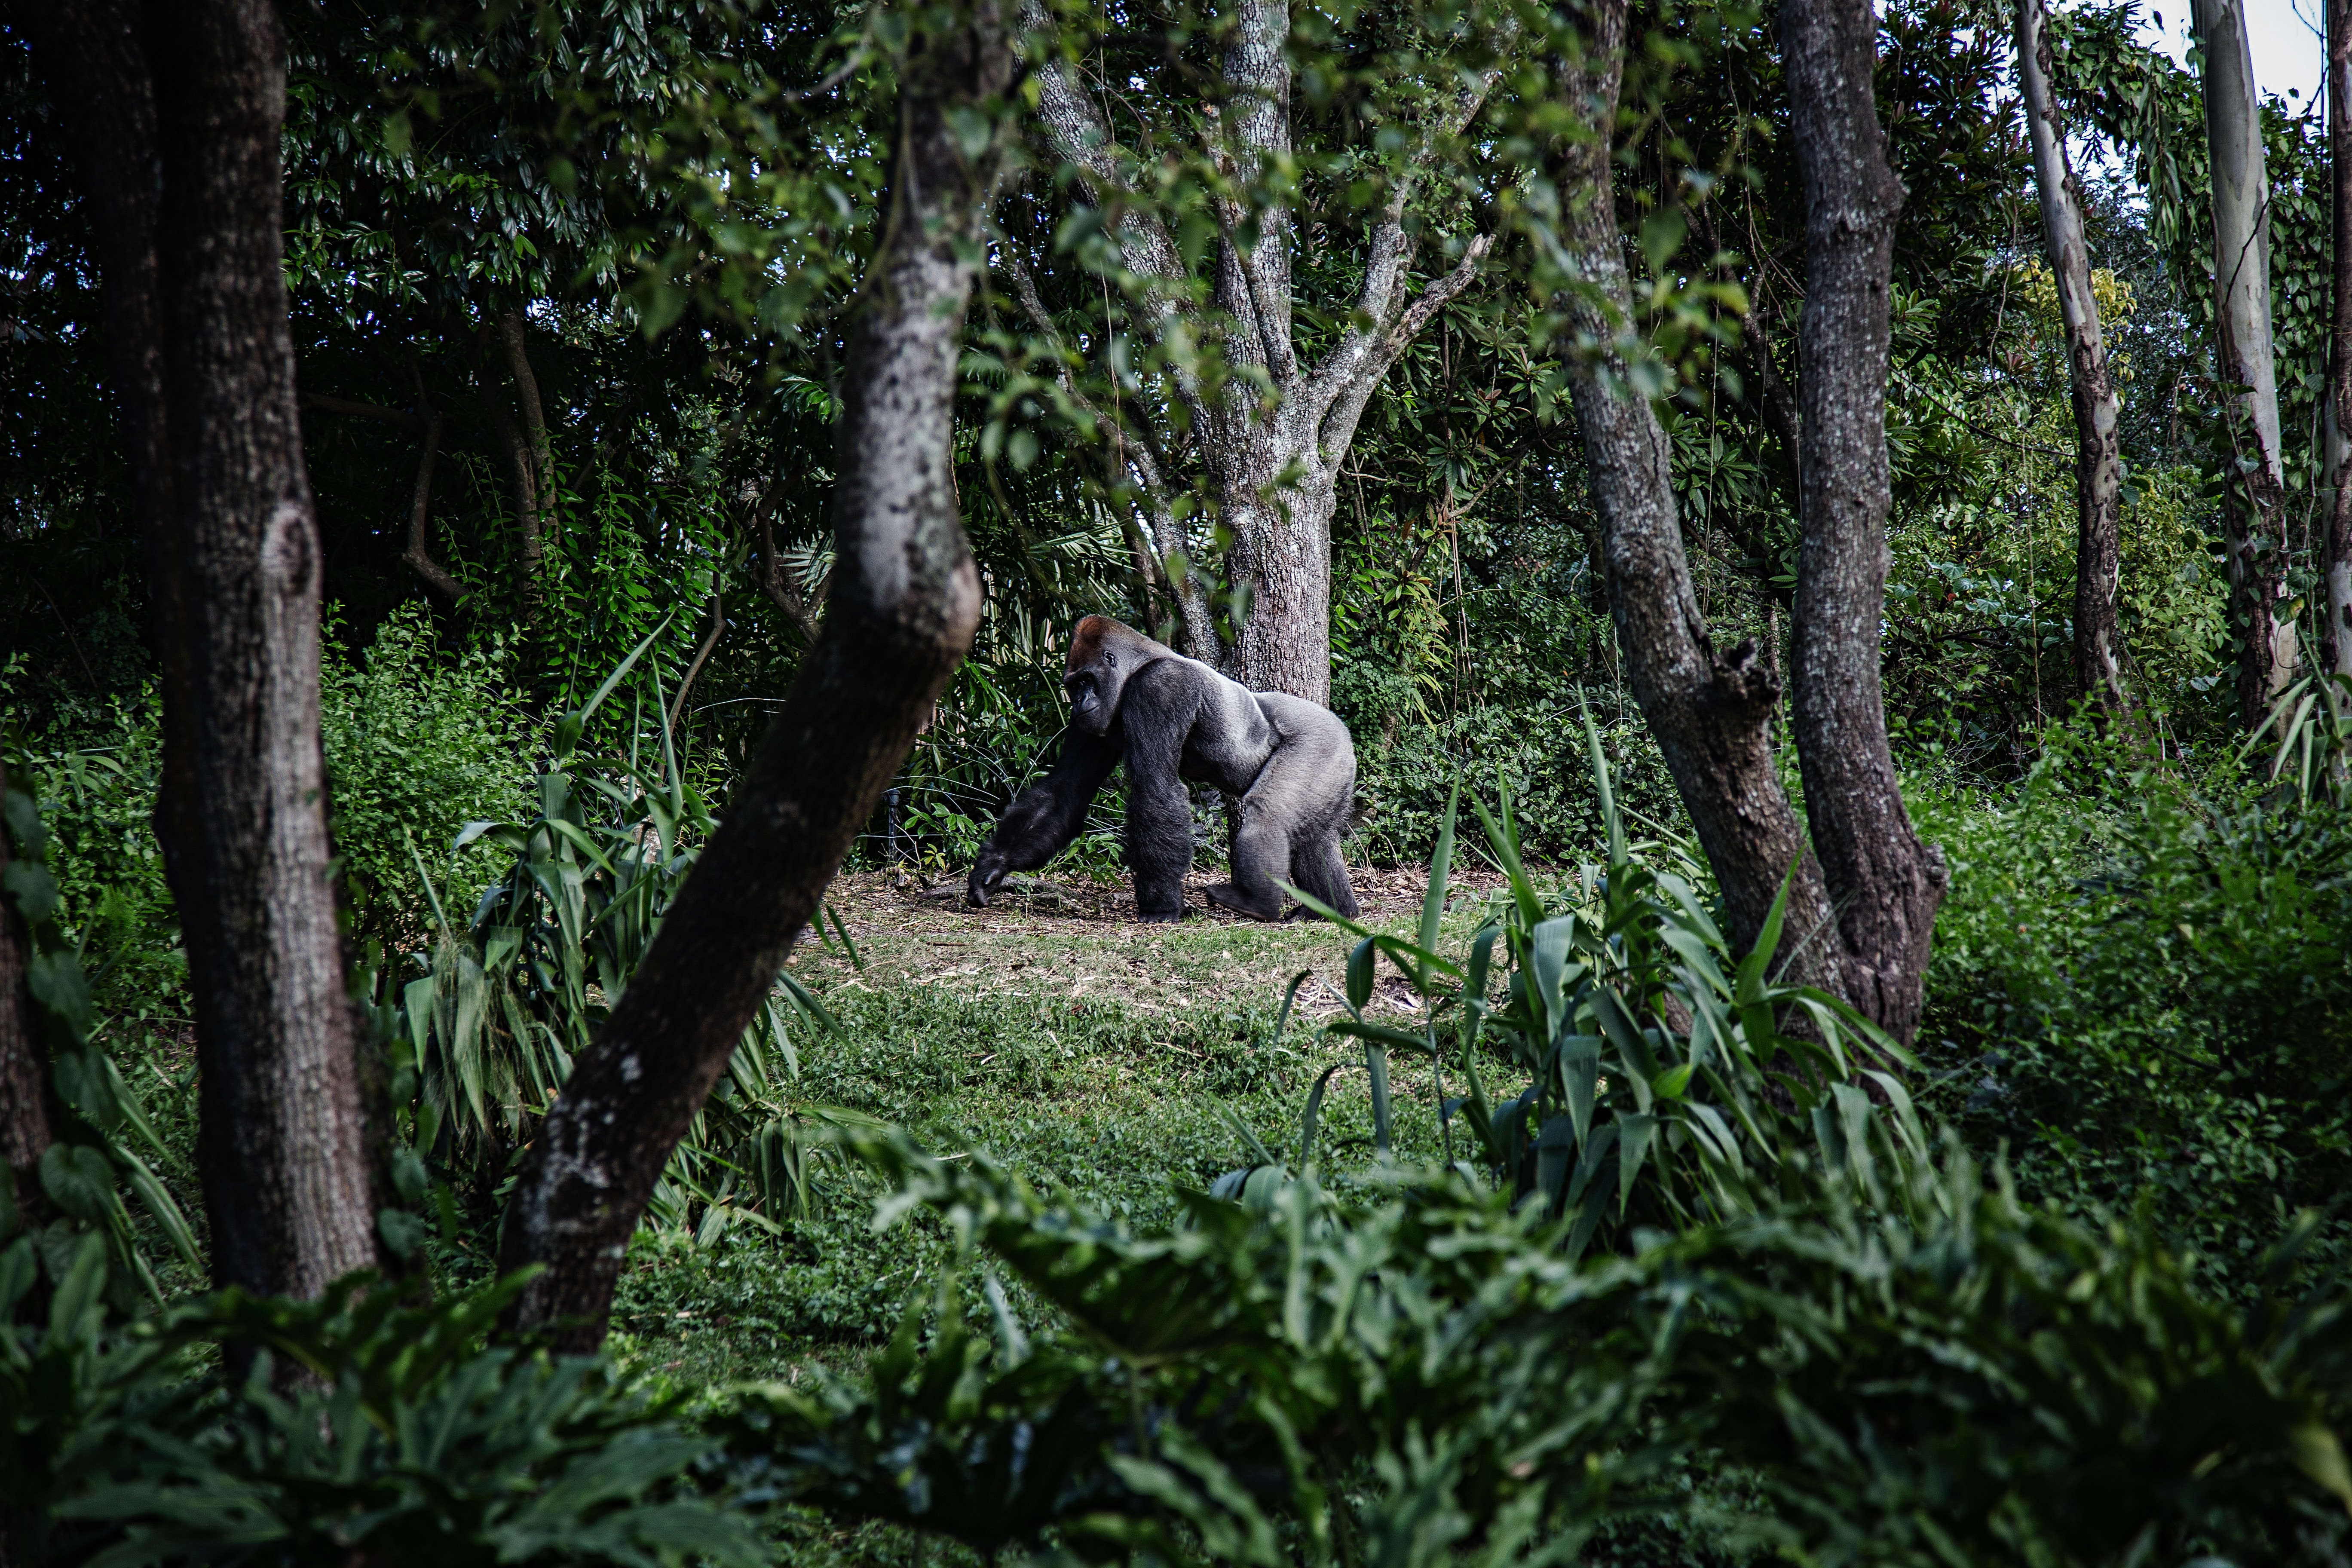 gorilla walking through forest